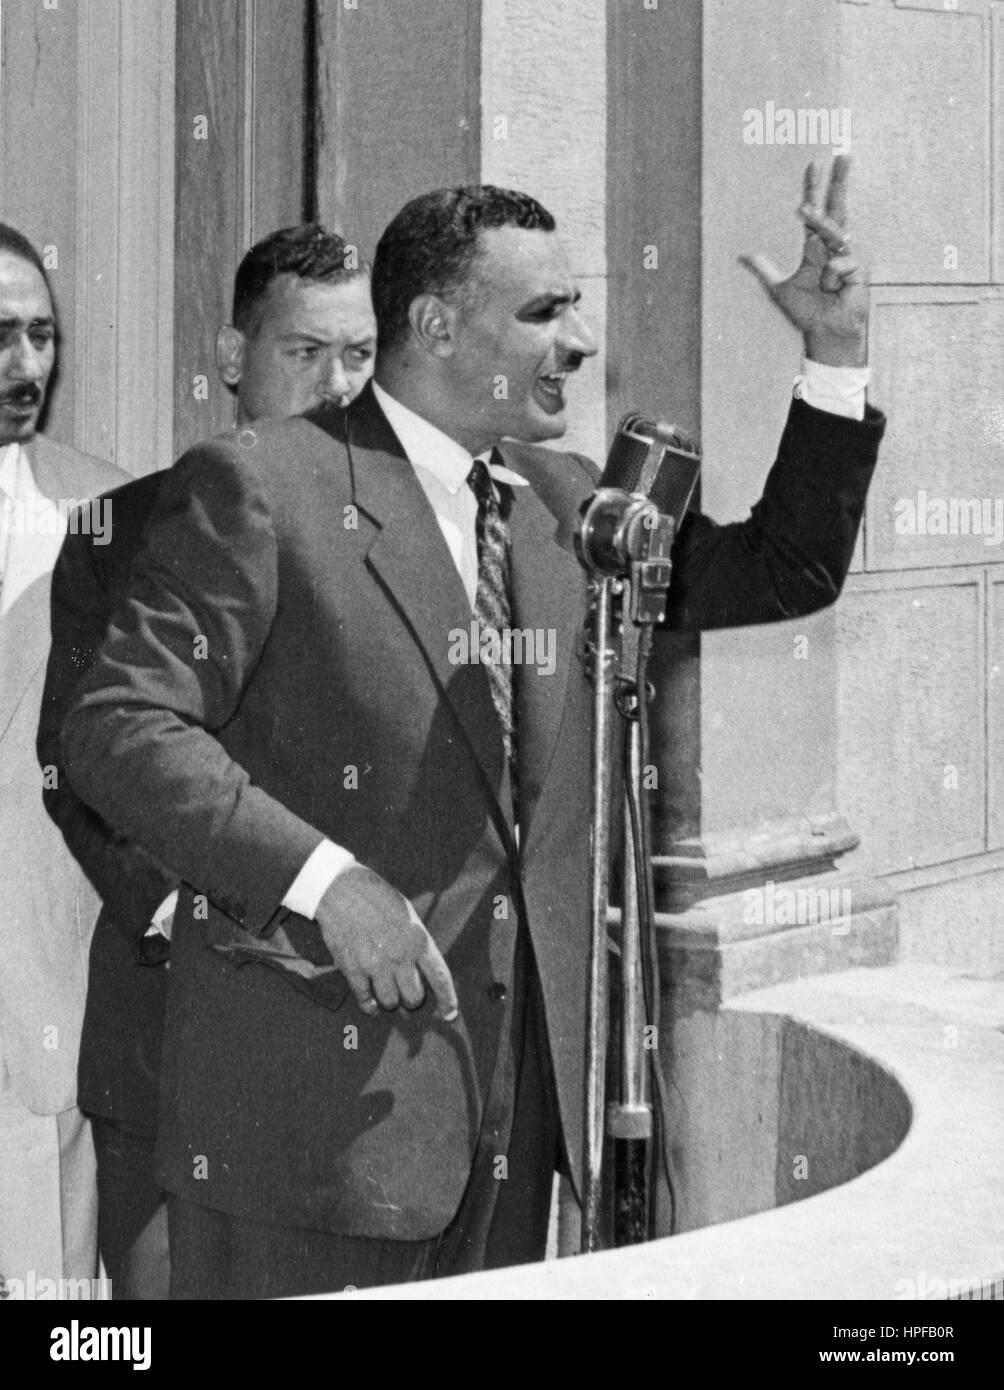 President Gamal Abdel Nasser addresses the crowds following his return from Alexandria where he proclaimed the nationalization - Stock Image